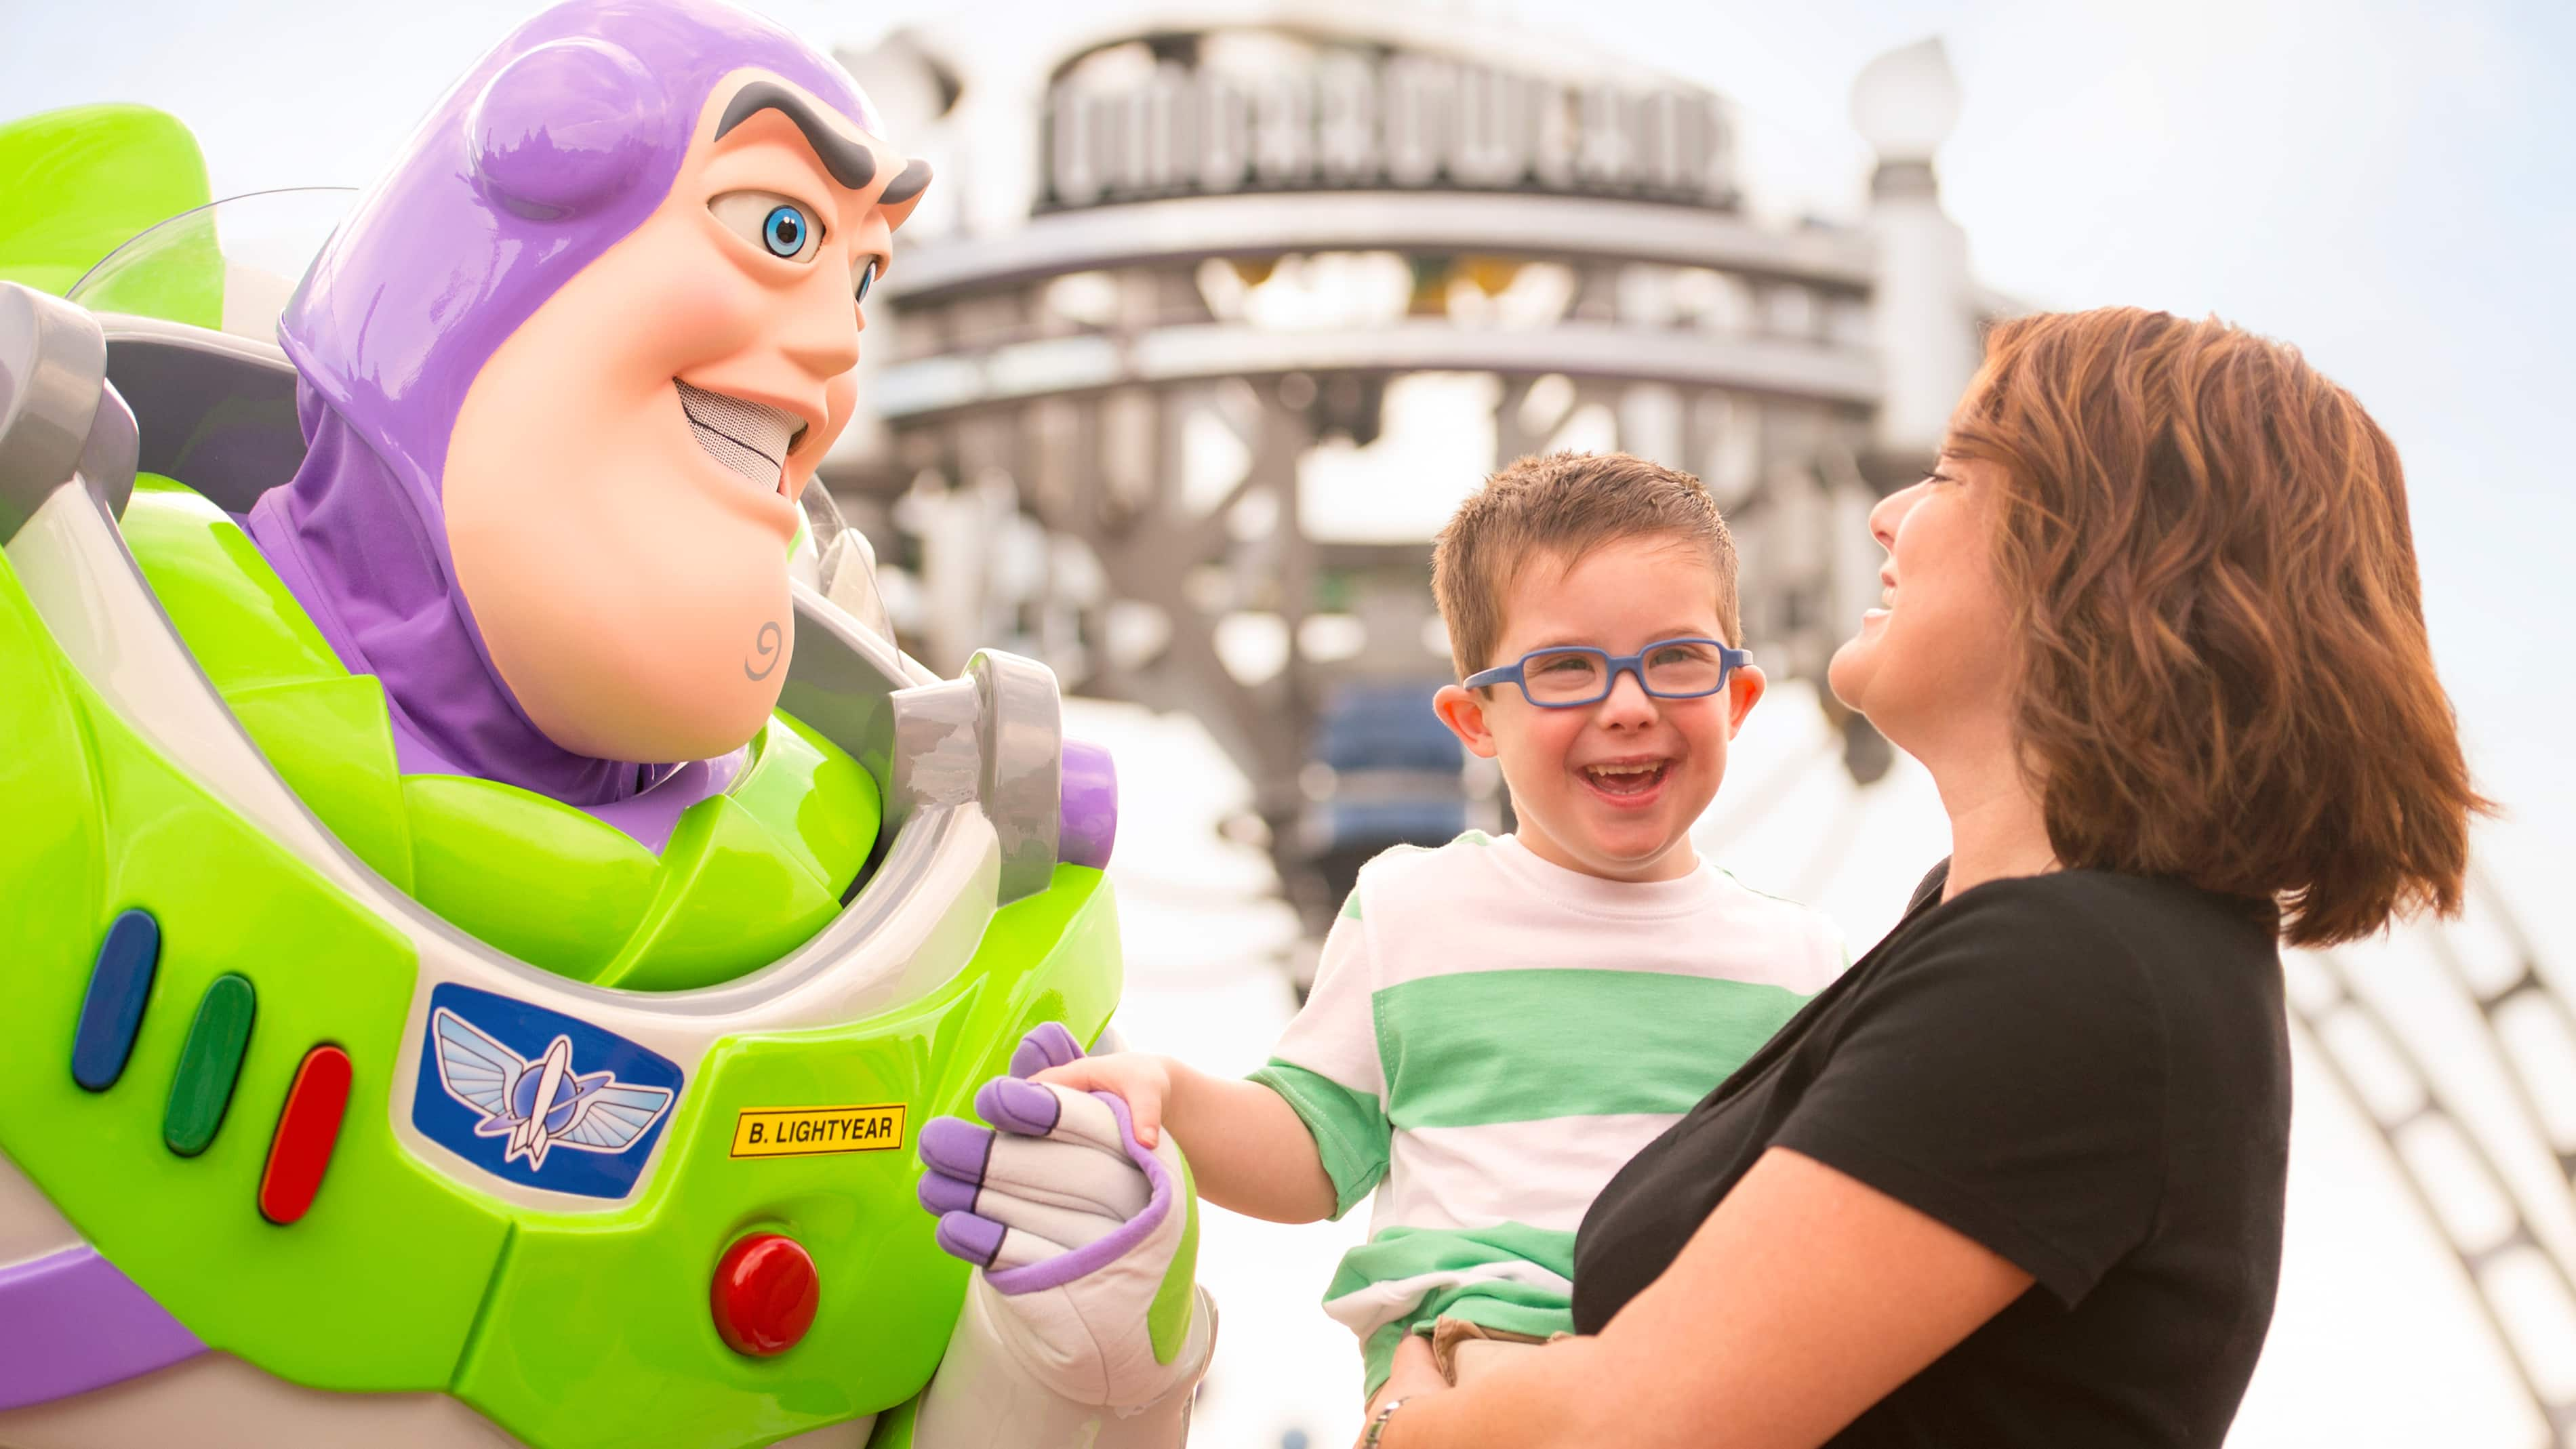 A mother and her son meet Buzz Lightyear